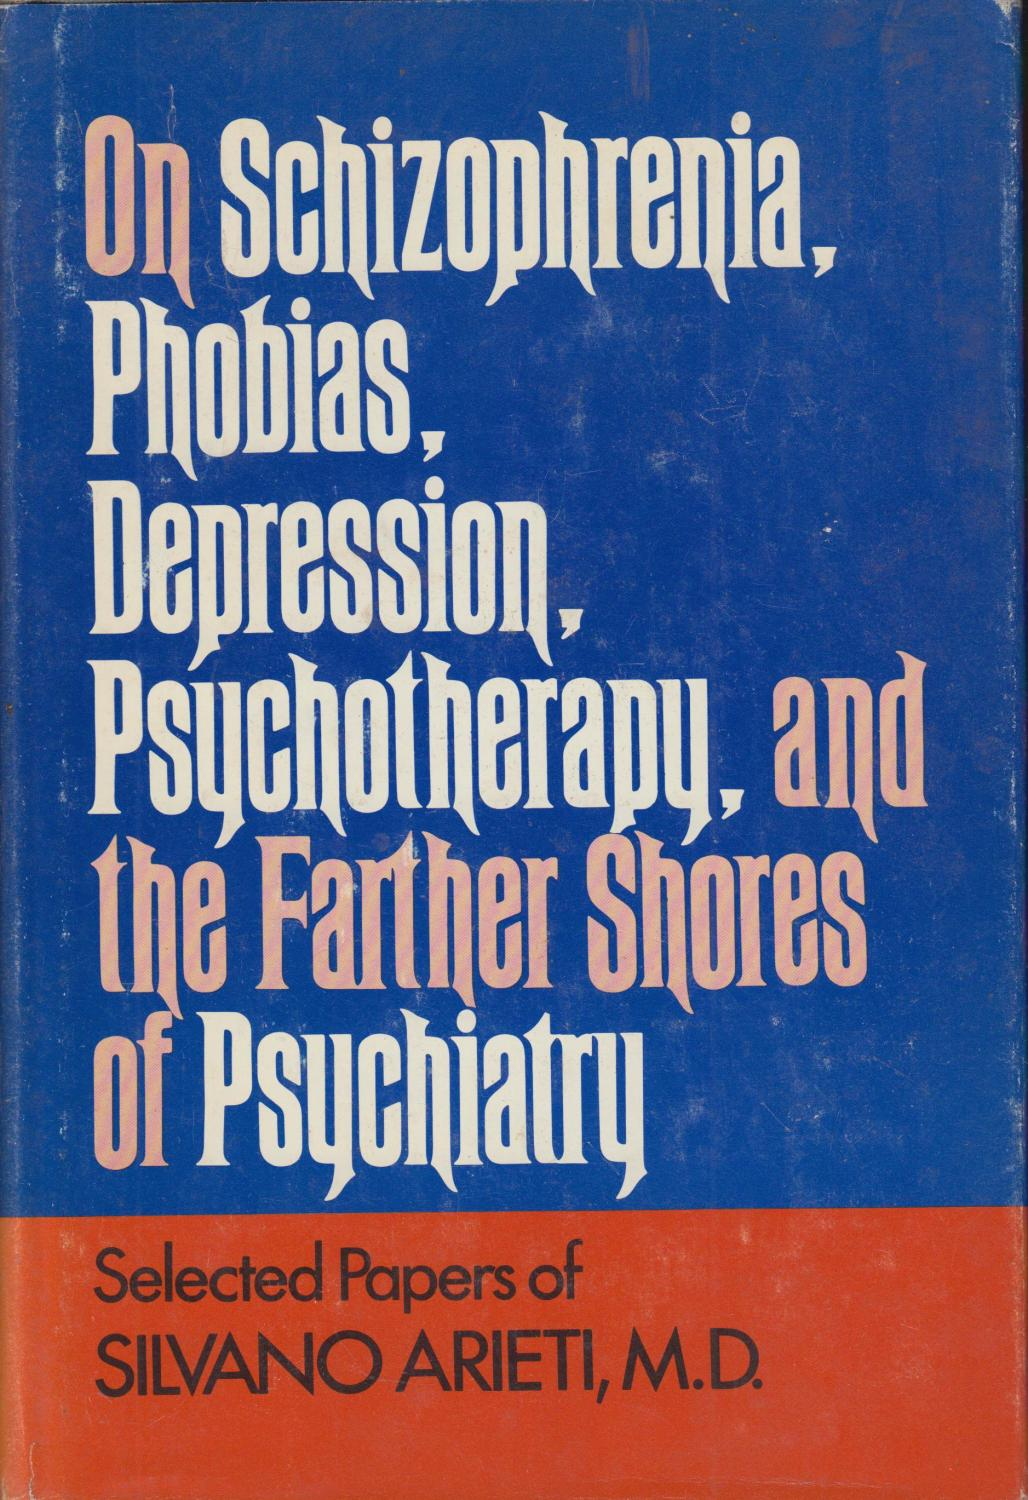 On Schizophrenia, Phobias, Depression, Psychotherapy, and the Farther Shores of Psychiatry